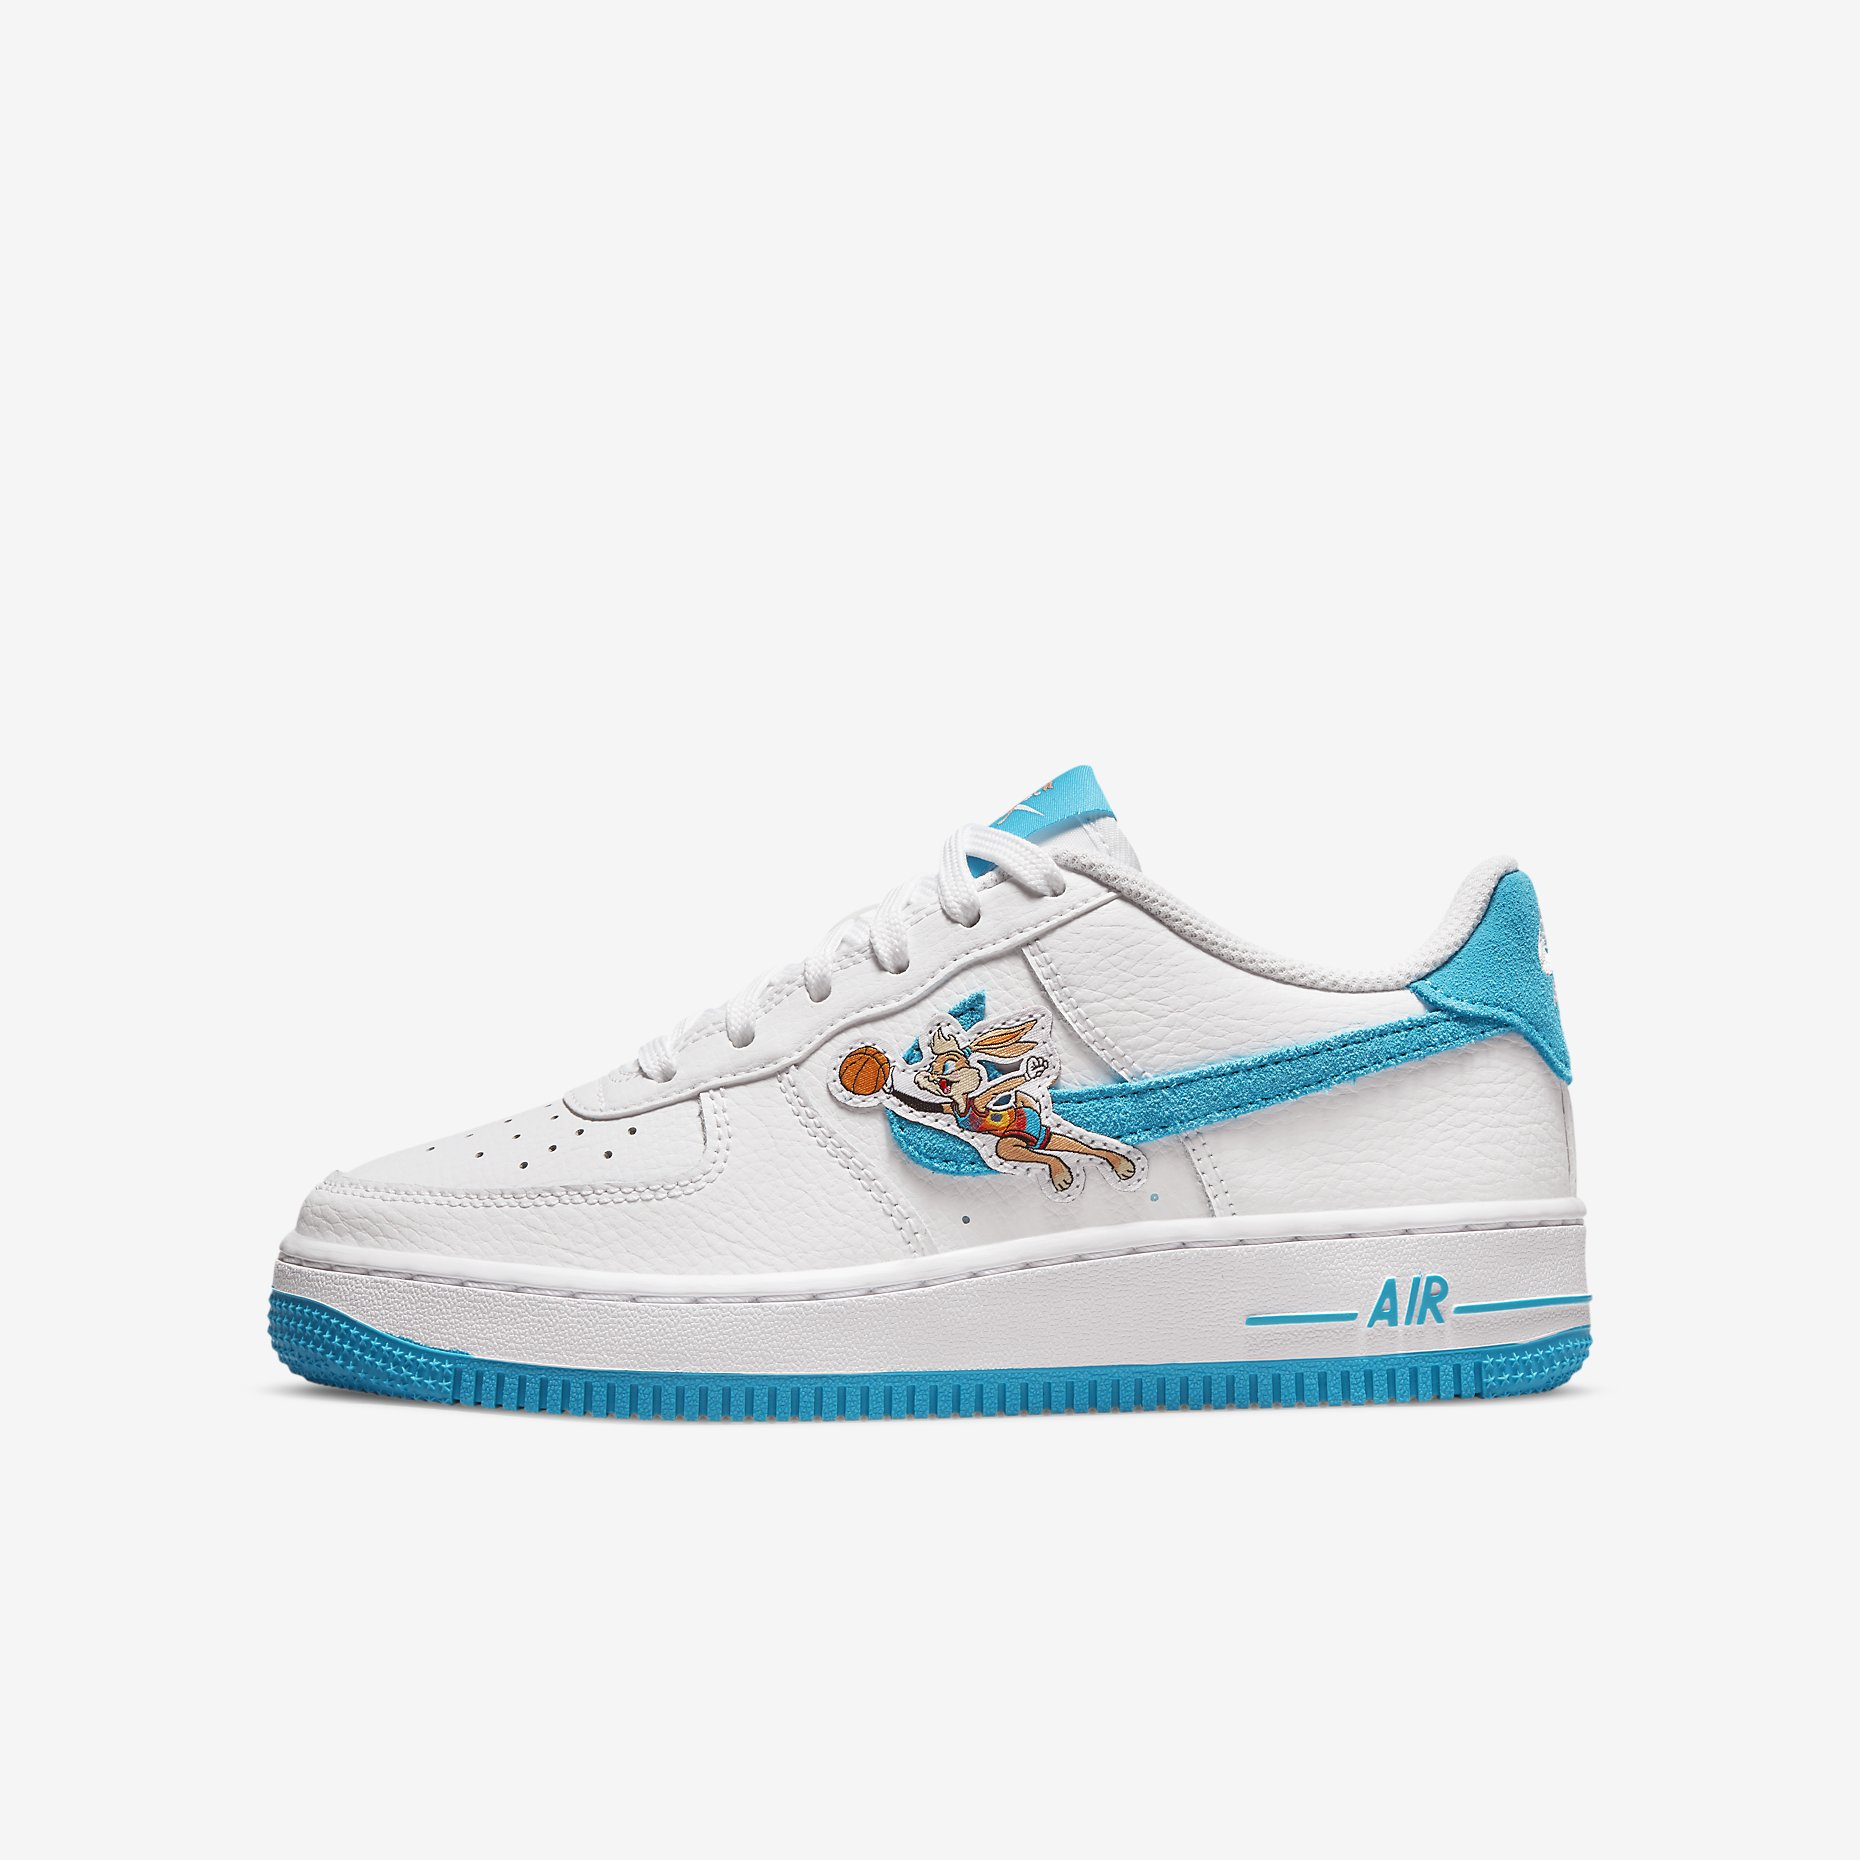 Space Jam x Nike Air Force 1 GS 'Hare'